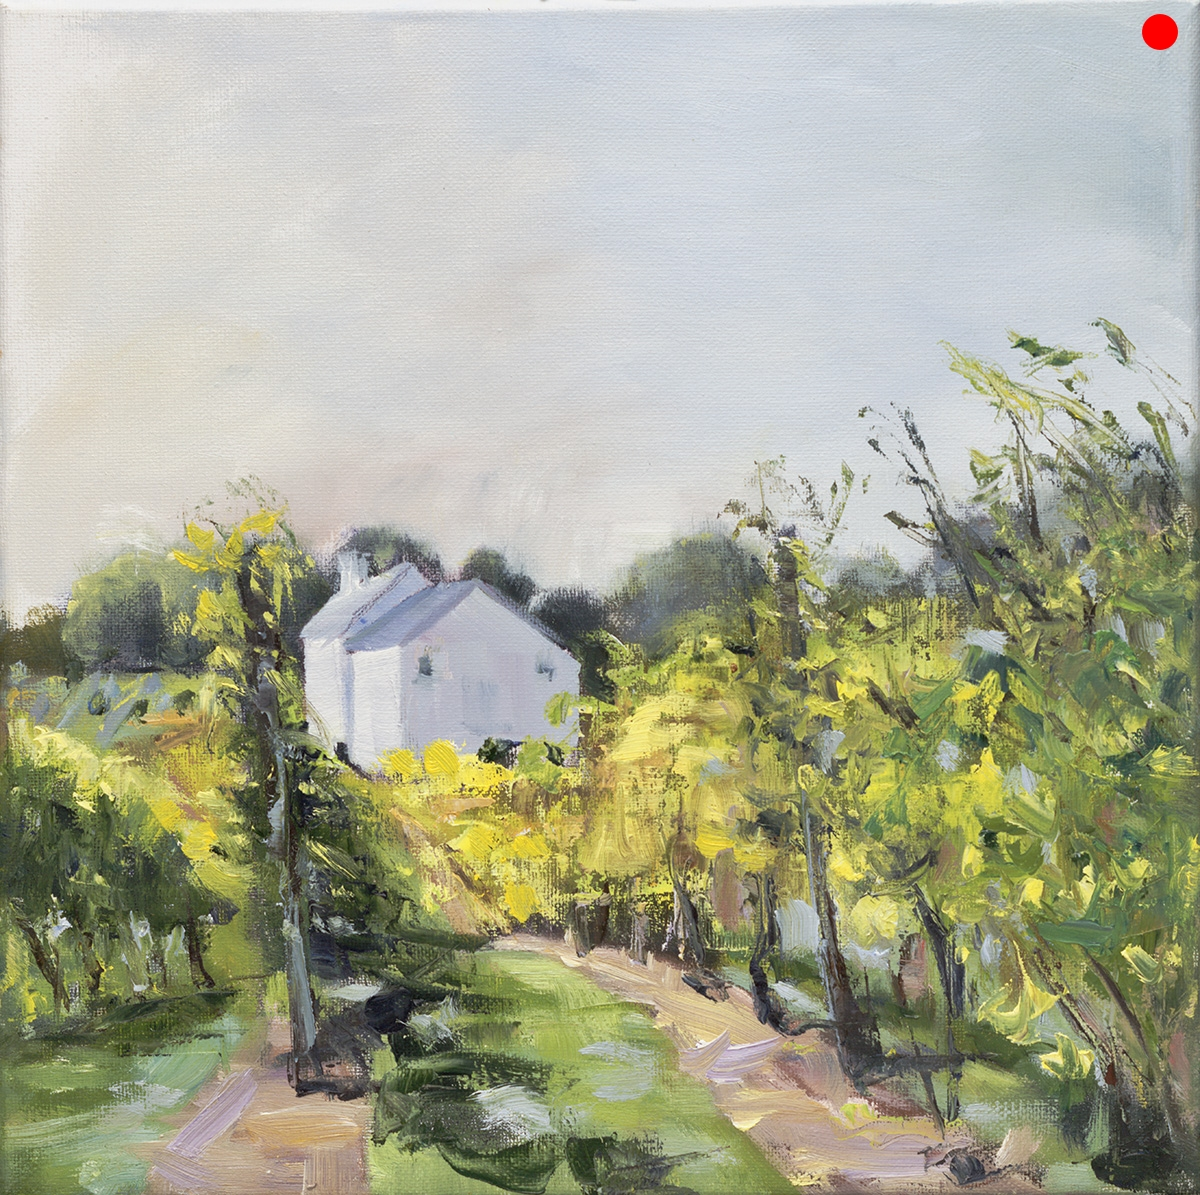 """Jewell Towne Vineyards - South Hampton, NH, 12 x 12"""" oil on stretched canvas in black floater frame"""